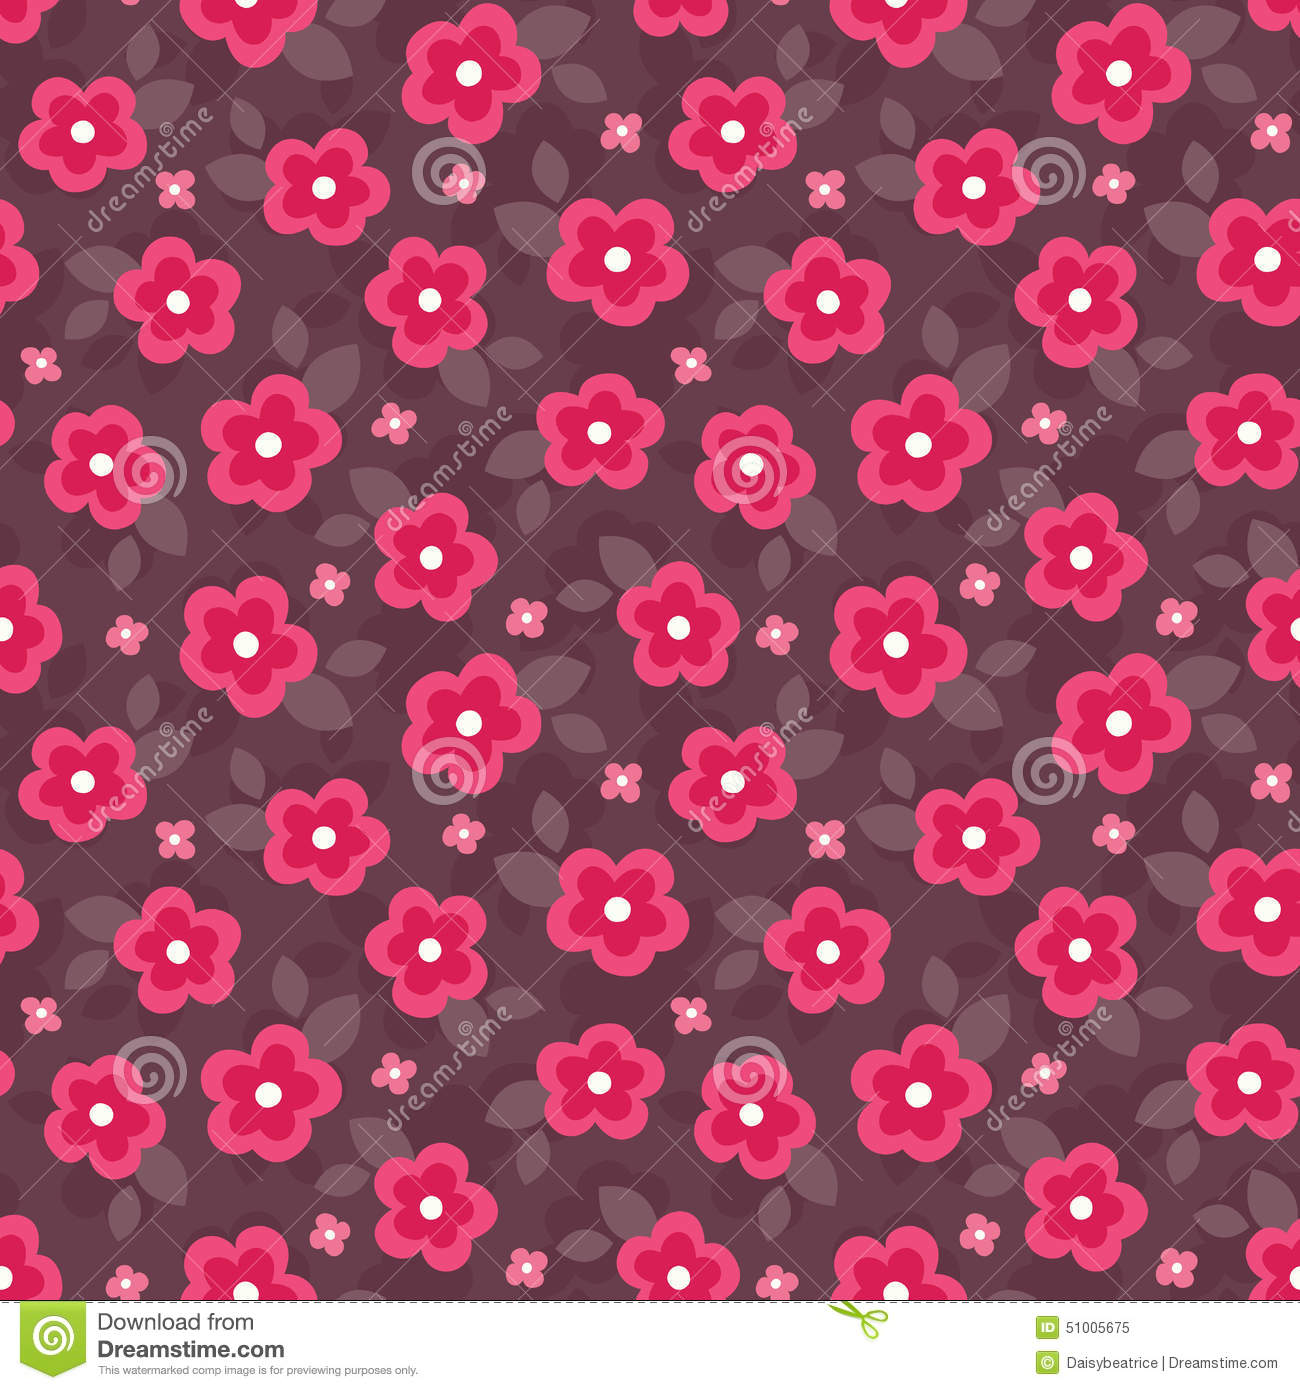 Sweet Girl Wallpaper Free Download Cute Seamless Floral Pattern In Pink And Red Stock Vector